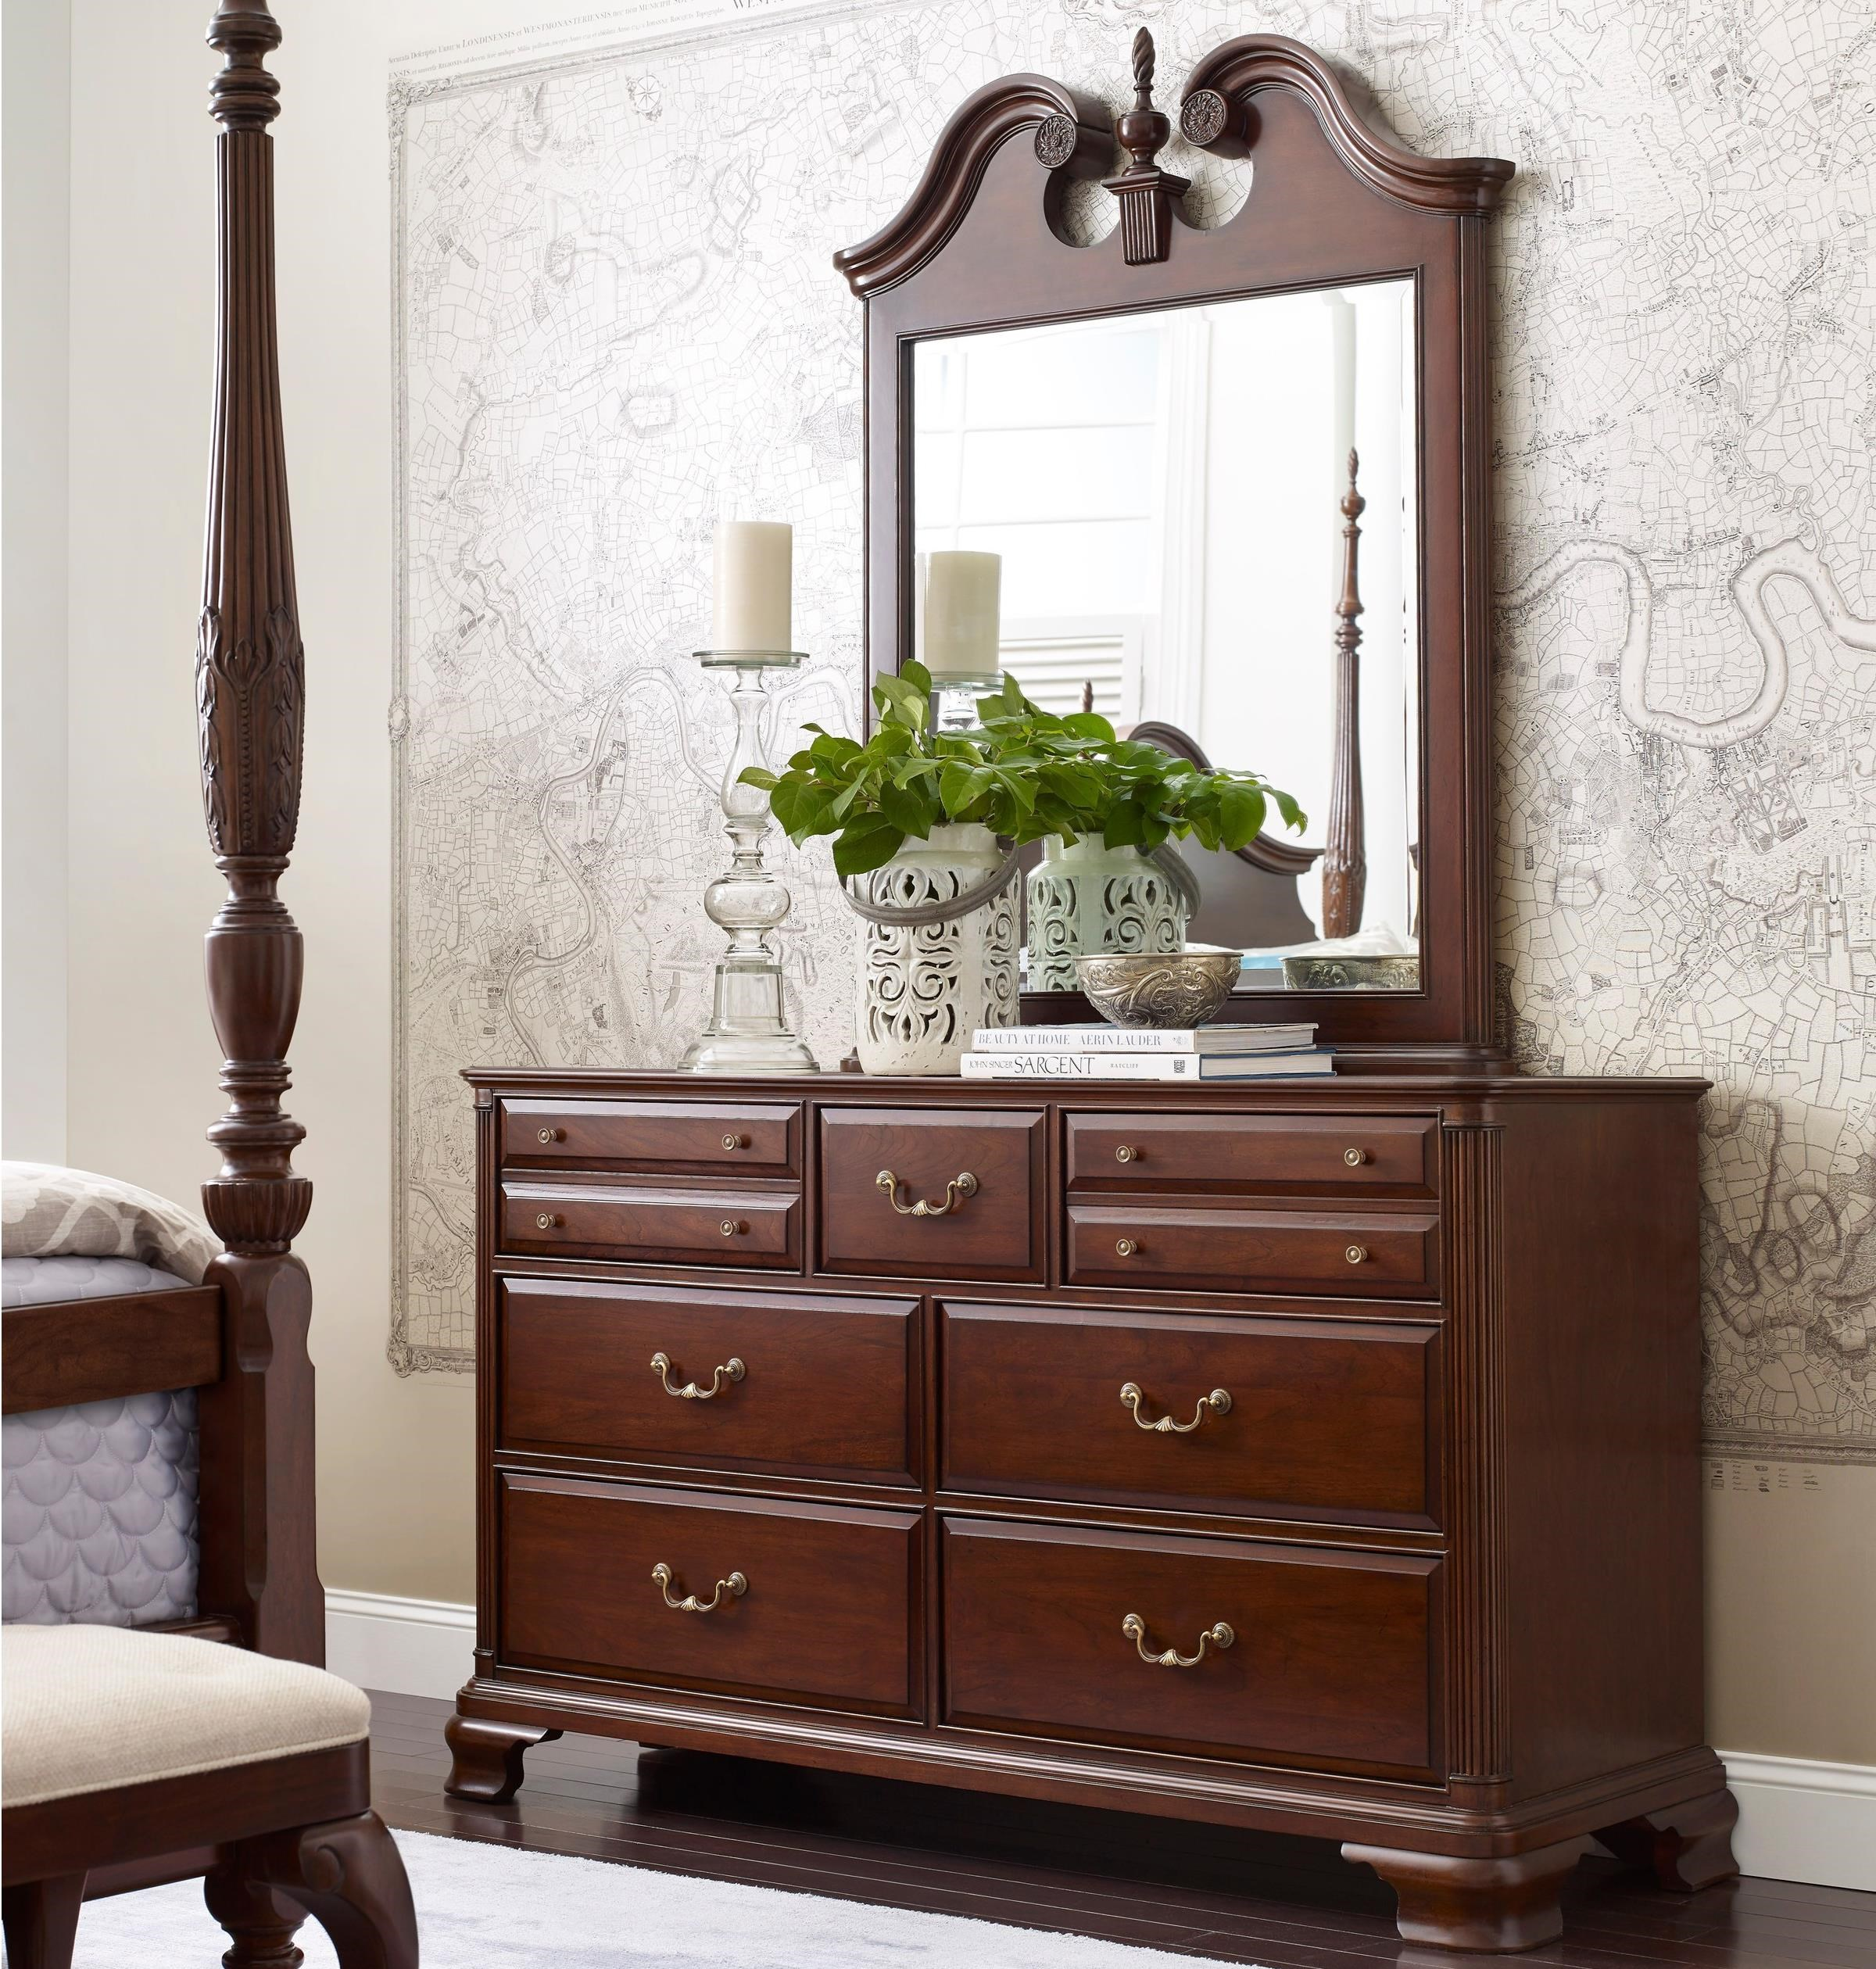 Hadleigh Dresser and Mirror Set by Kincaid Furniture at Northeast Factory Direct